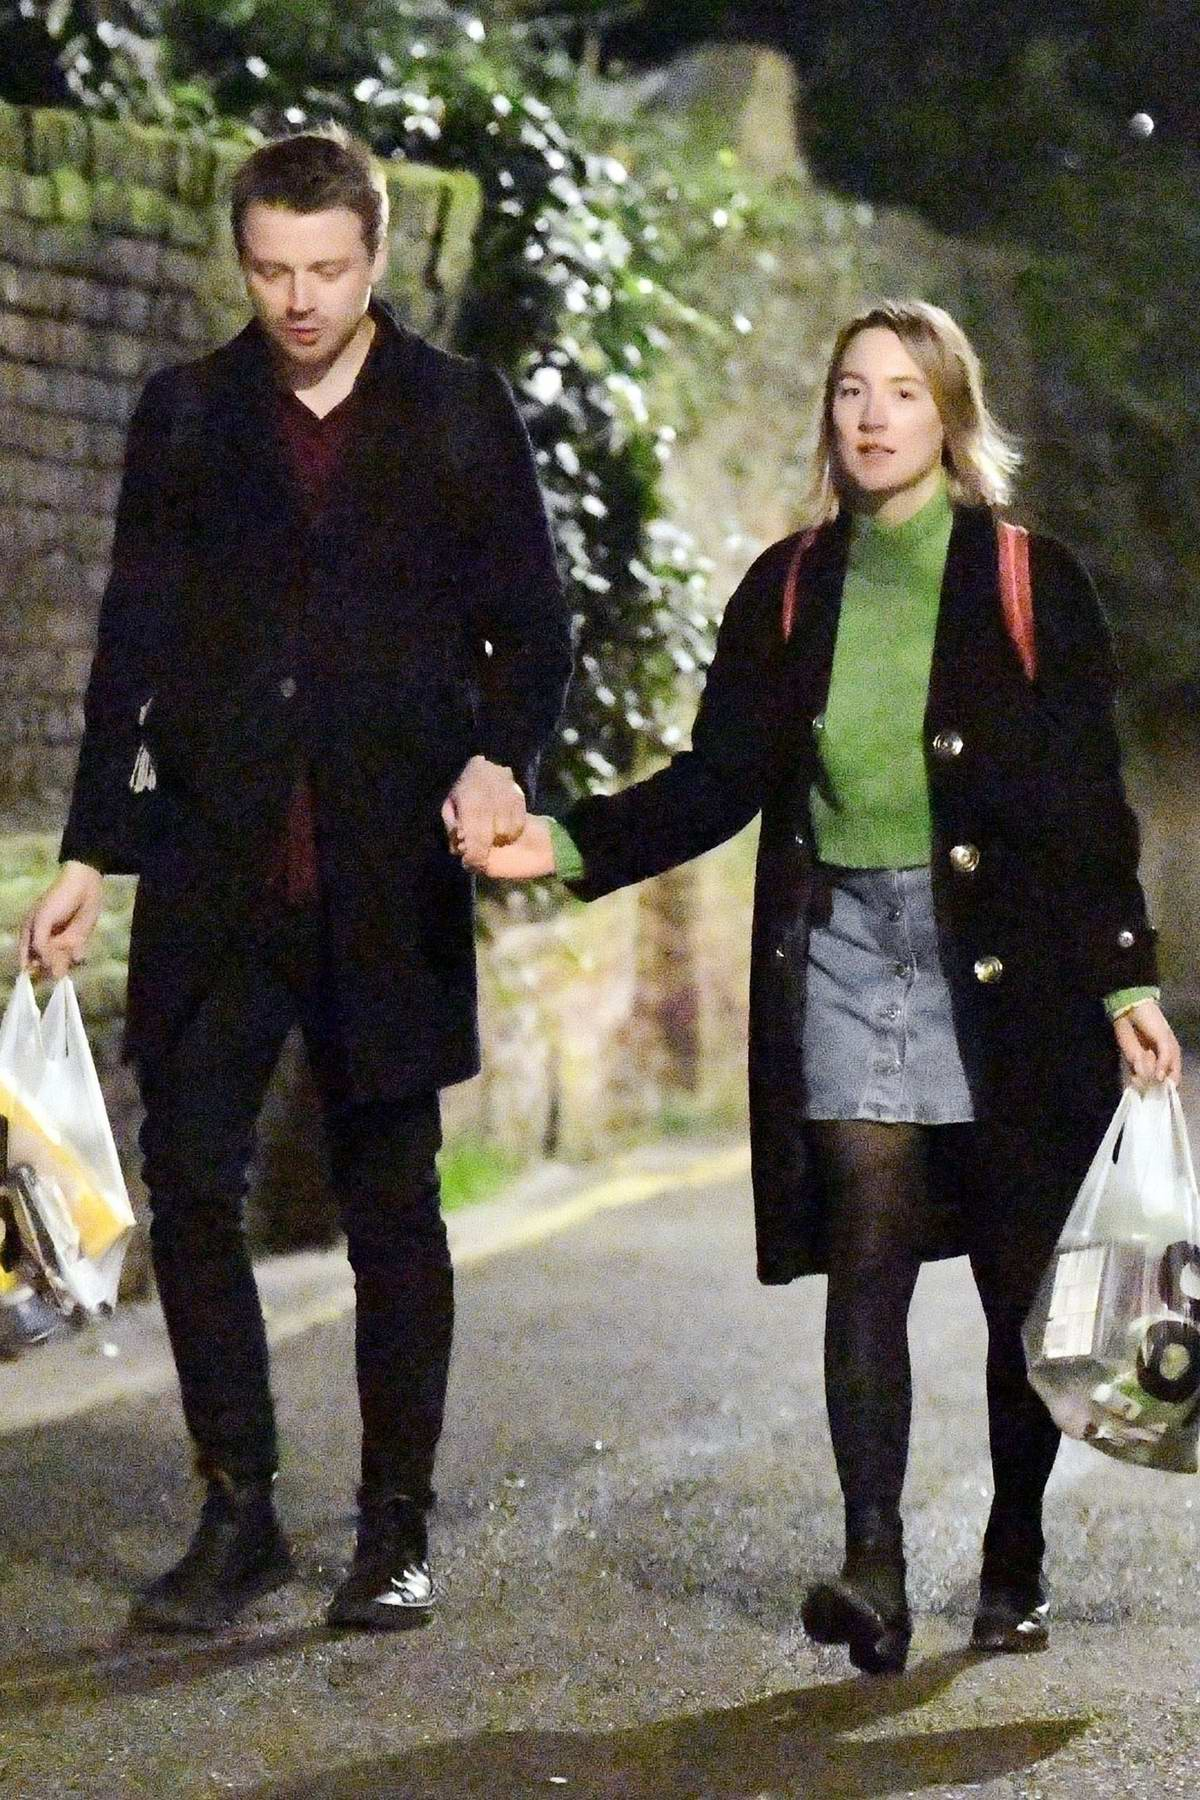 Saoirse Ronan Steps Out For An Evening Stroll While Holding Hands With Scottish Actor Jack Lowden